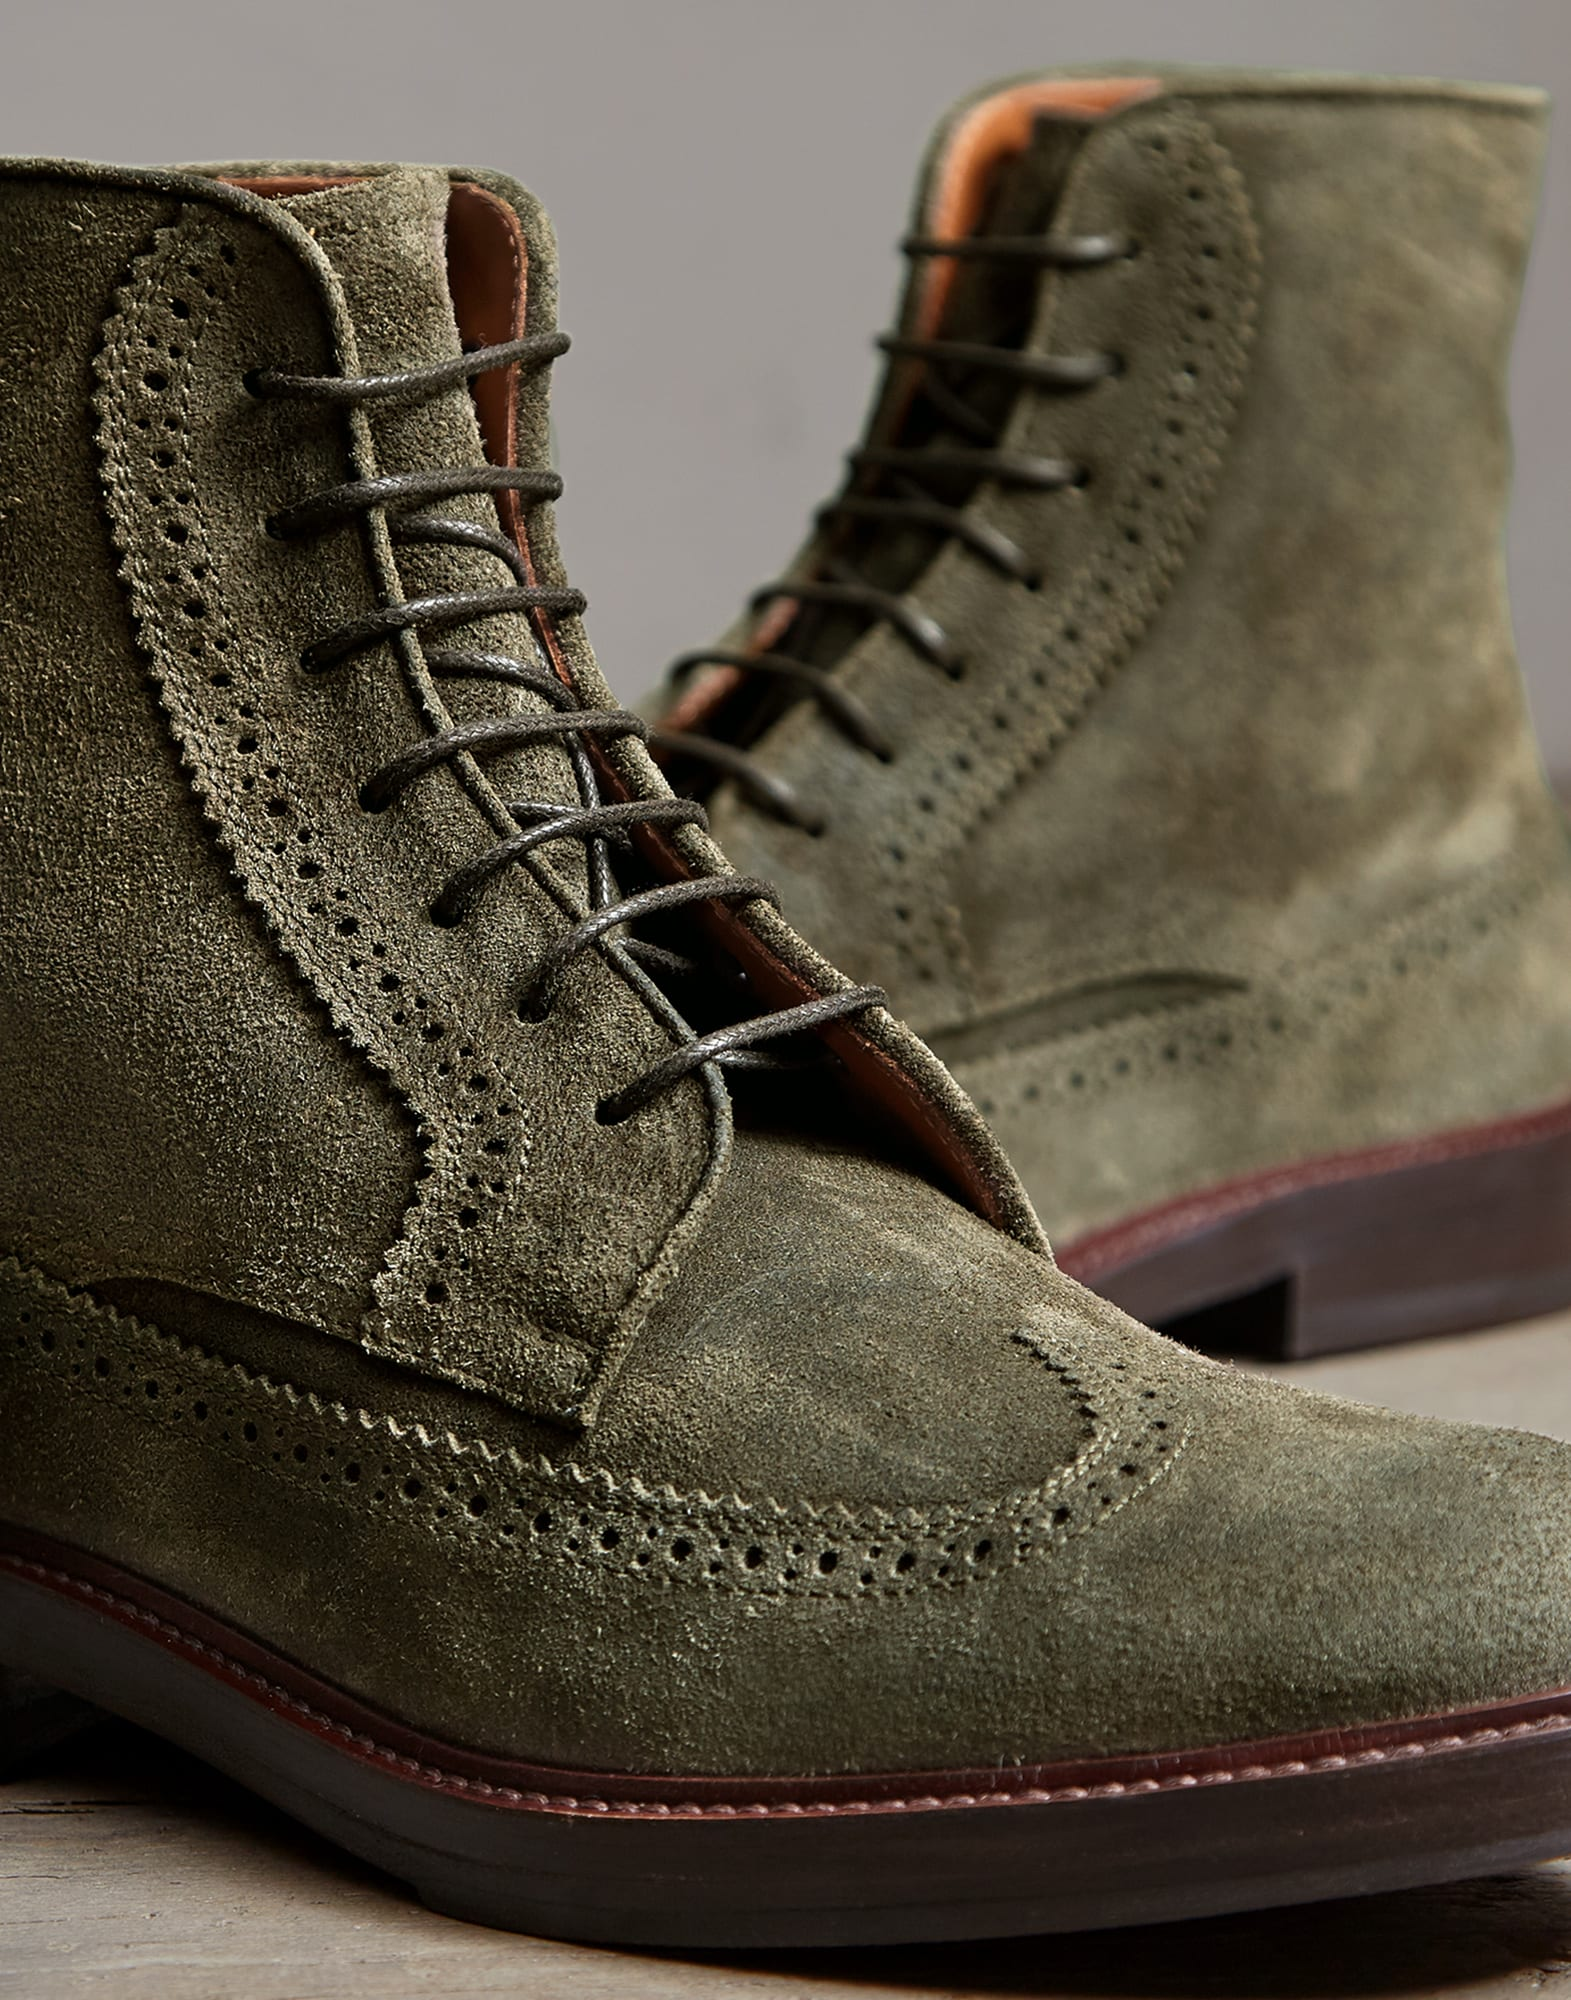 Boots - Detail